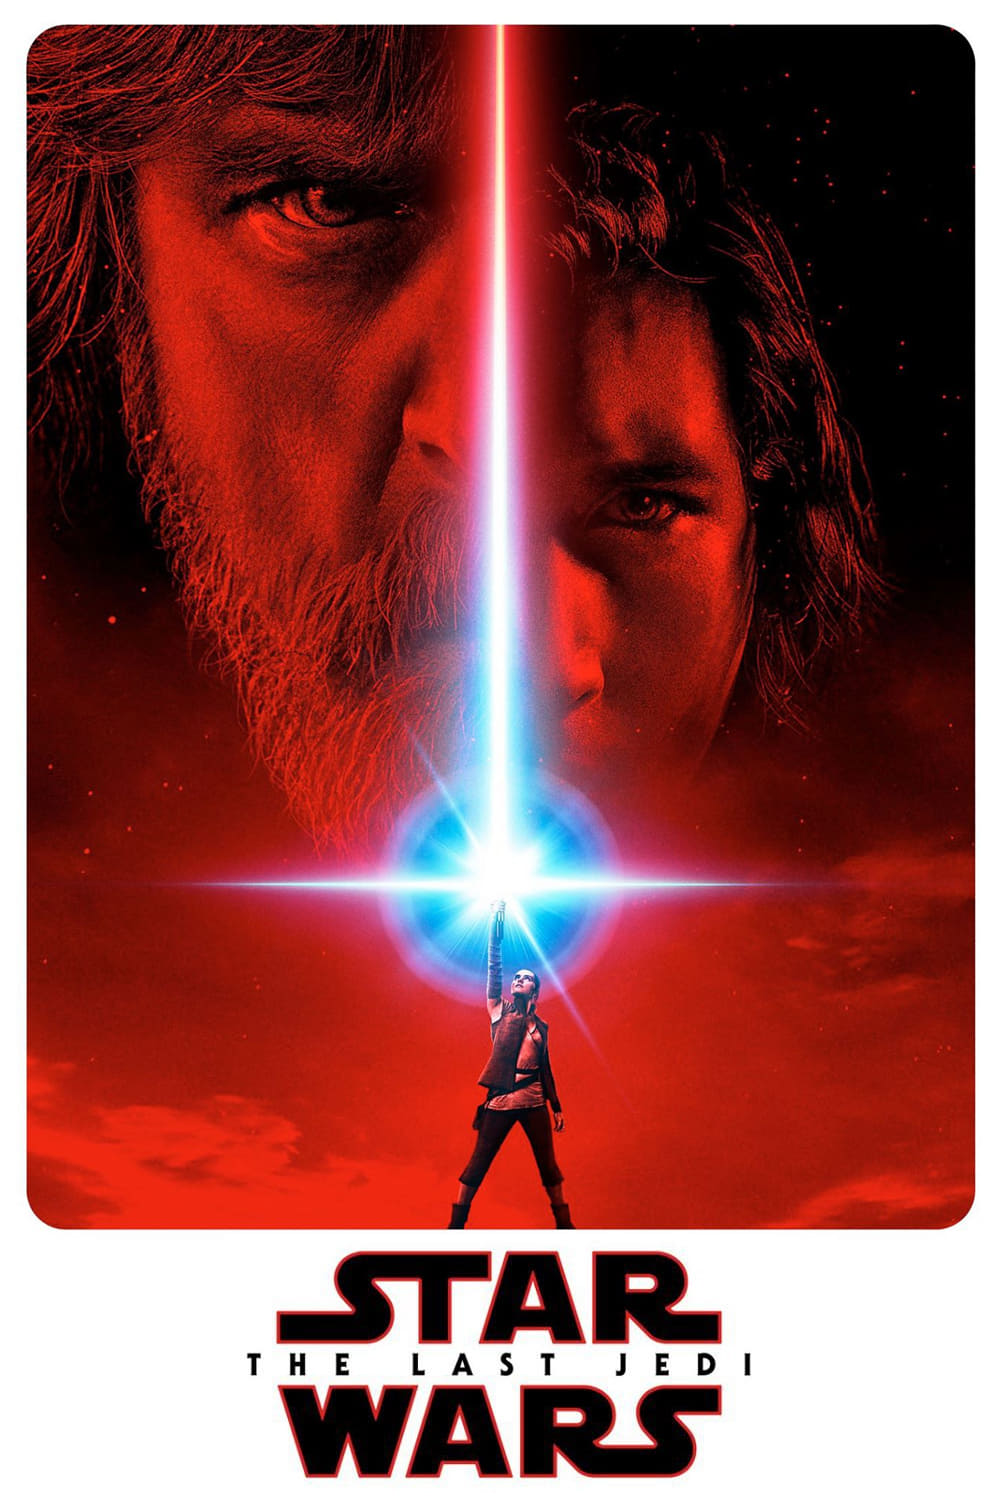 Poster and image movie Film Star Wars: Ultimii Jedi - Războaiele stelare: Episodul VIII - Star Wars: The Last Jedi - Star Wars: The Last Jedi -  2017